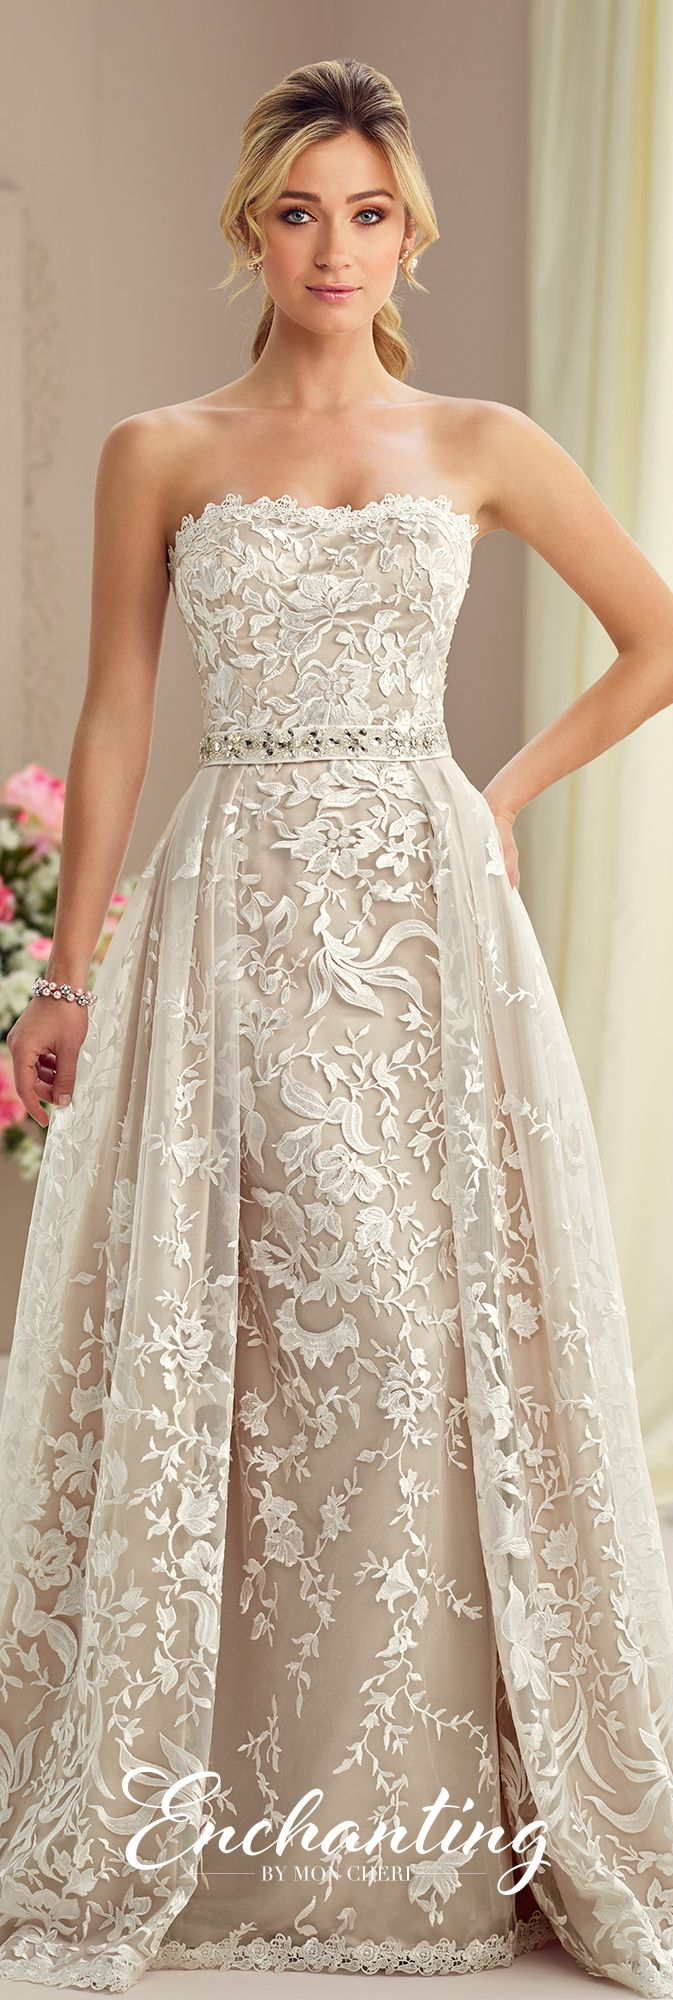 Modern Wedding Dresses 2018 by Mon Cheri | Enchanted, Gowns and ...